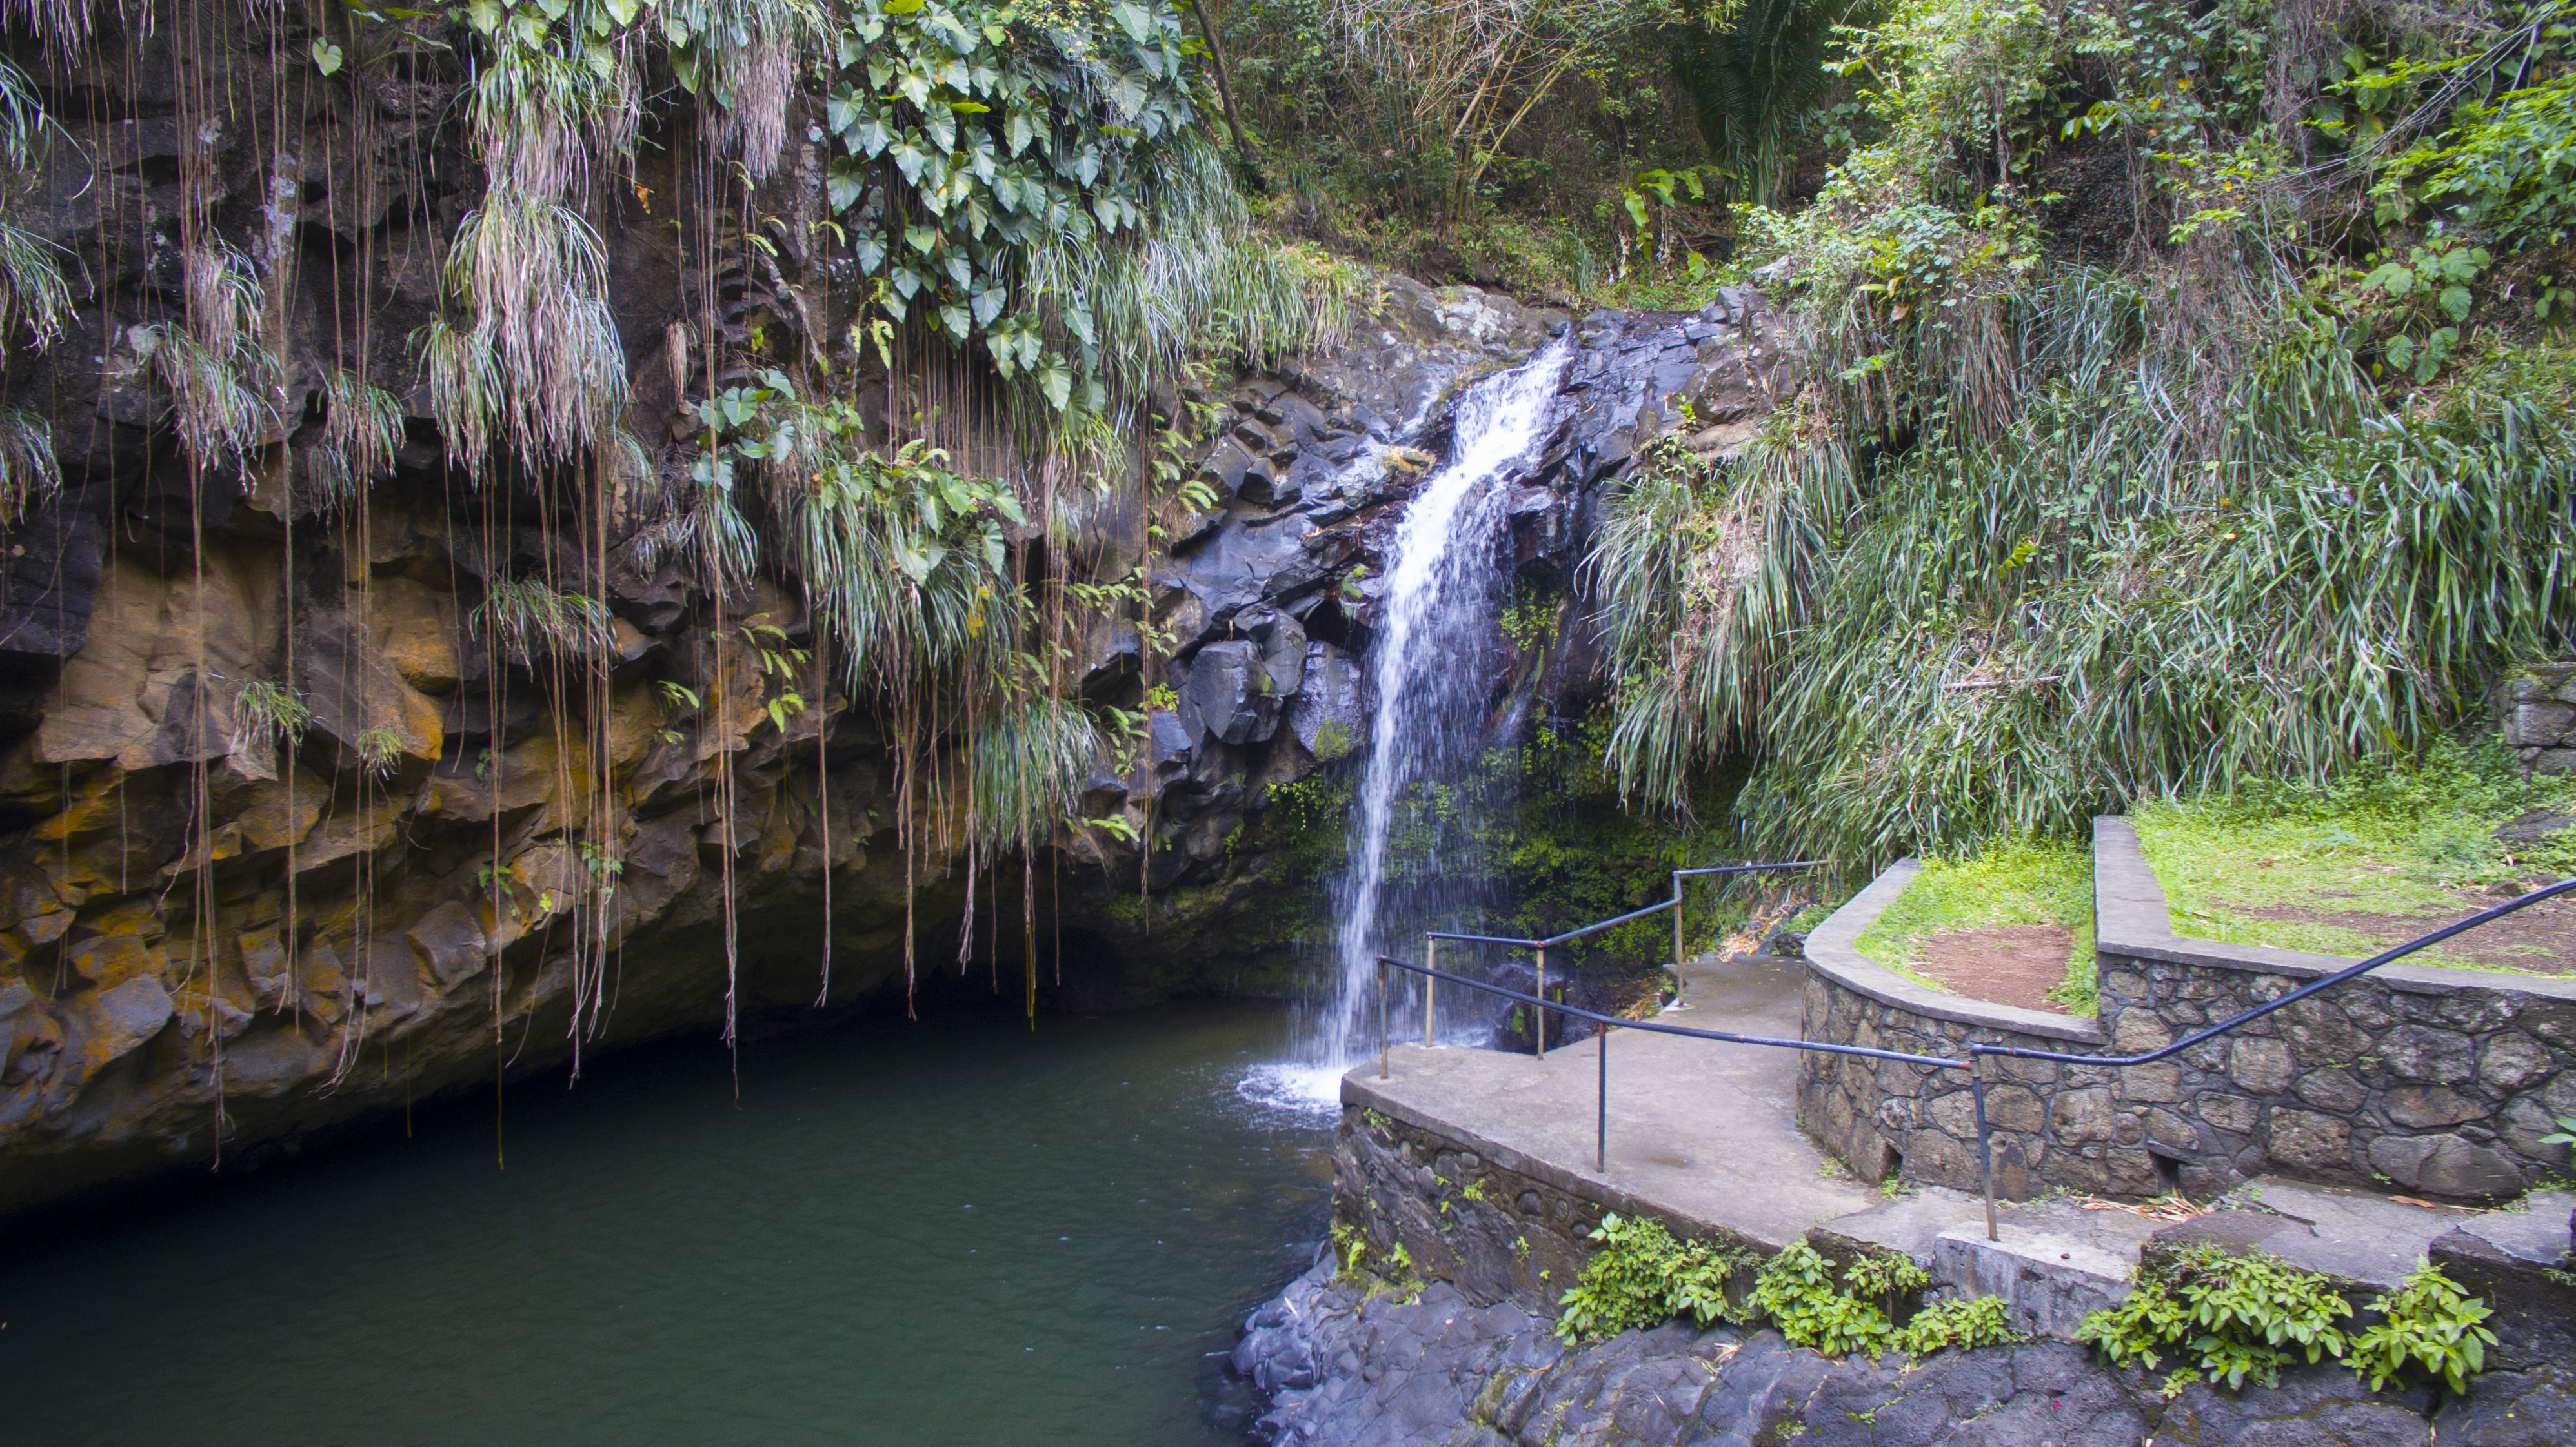 Annandale Waterfall view, Grenada